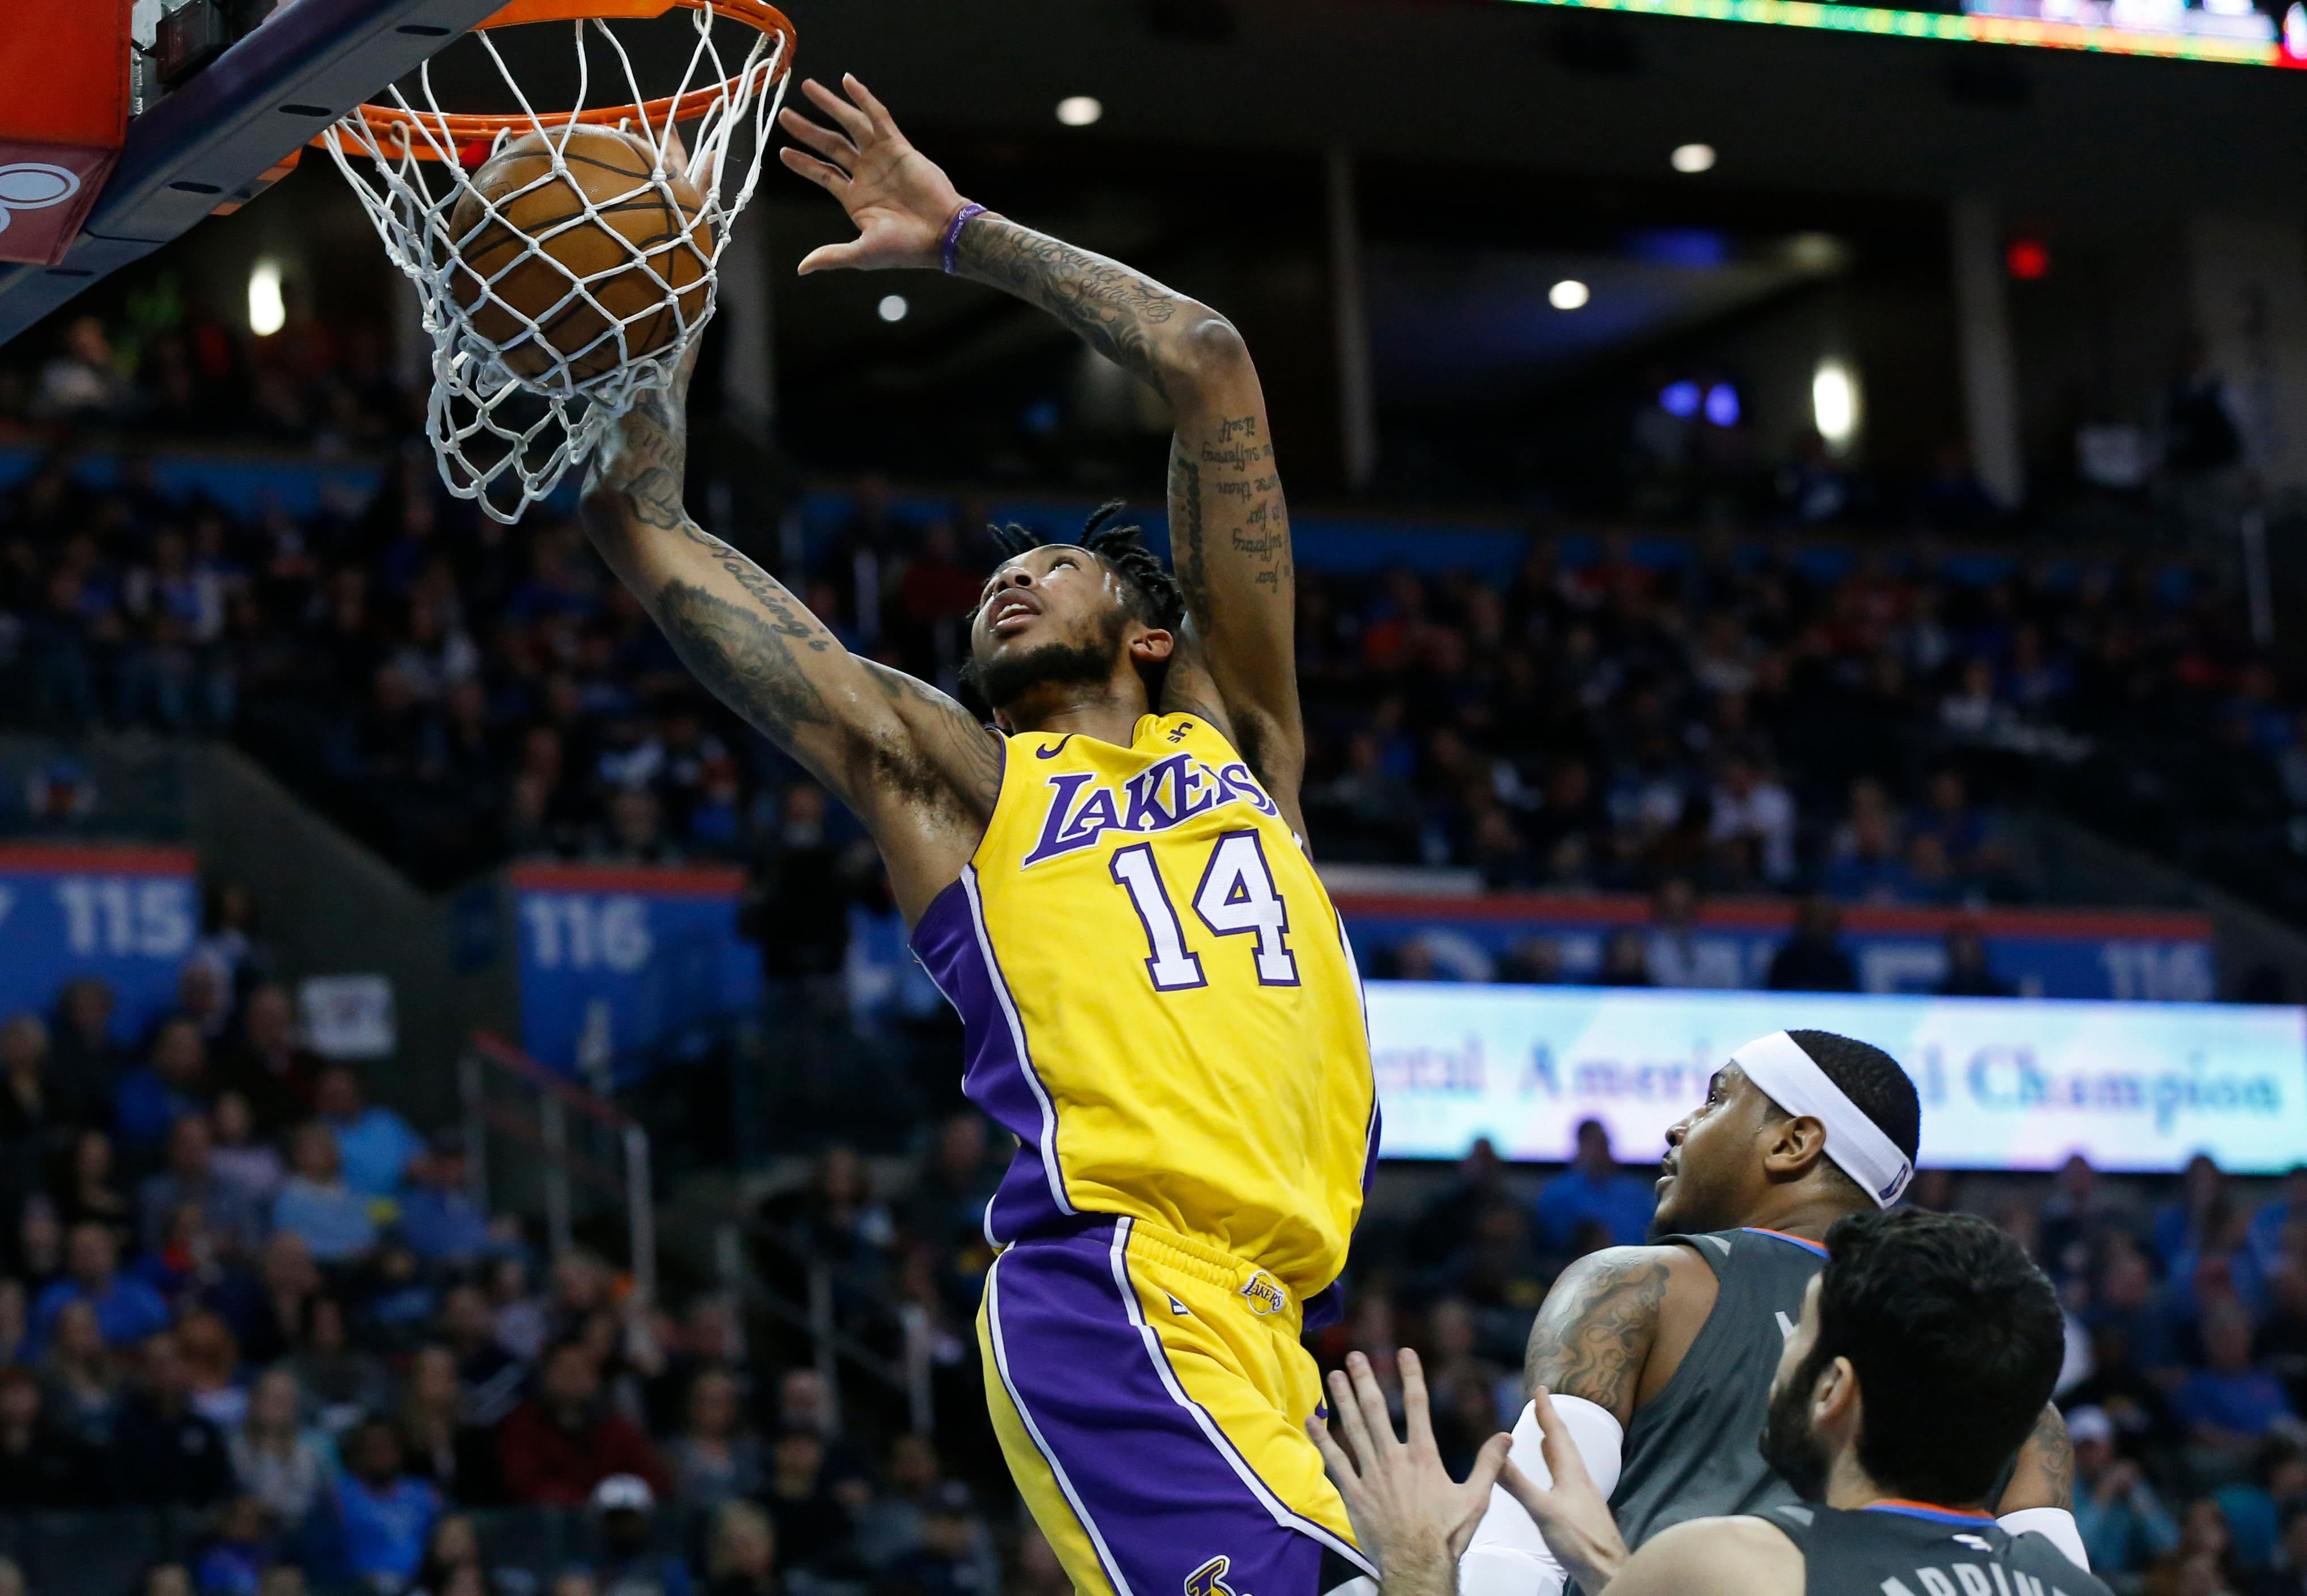 Los Angeles Lakers forward Brandon Ingram (14) dunks in front of Oklahoma City Thunder forward Carmelo Anthony, center, and guard Alex Abrines, right, in the first half of an NBA basketball game in Oklahoma City, Sunday, Feb. 4, 2018. (AP Photo/Sue Ogrocki)